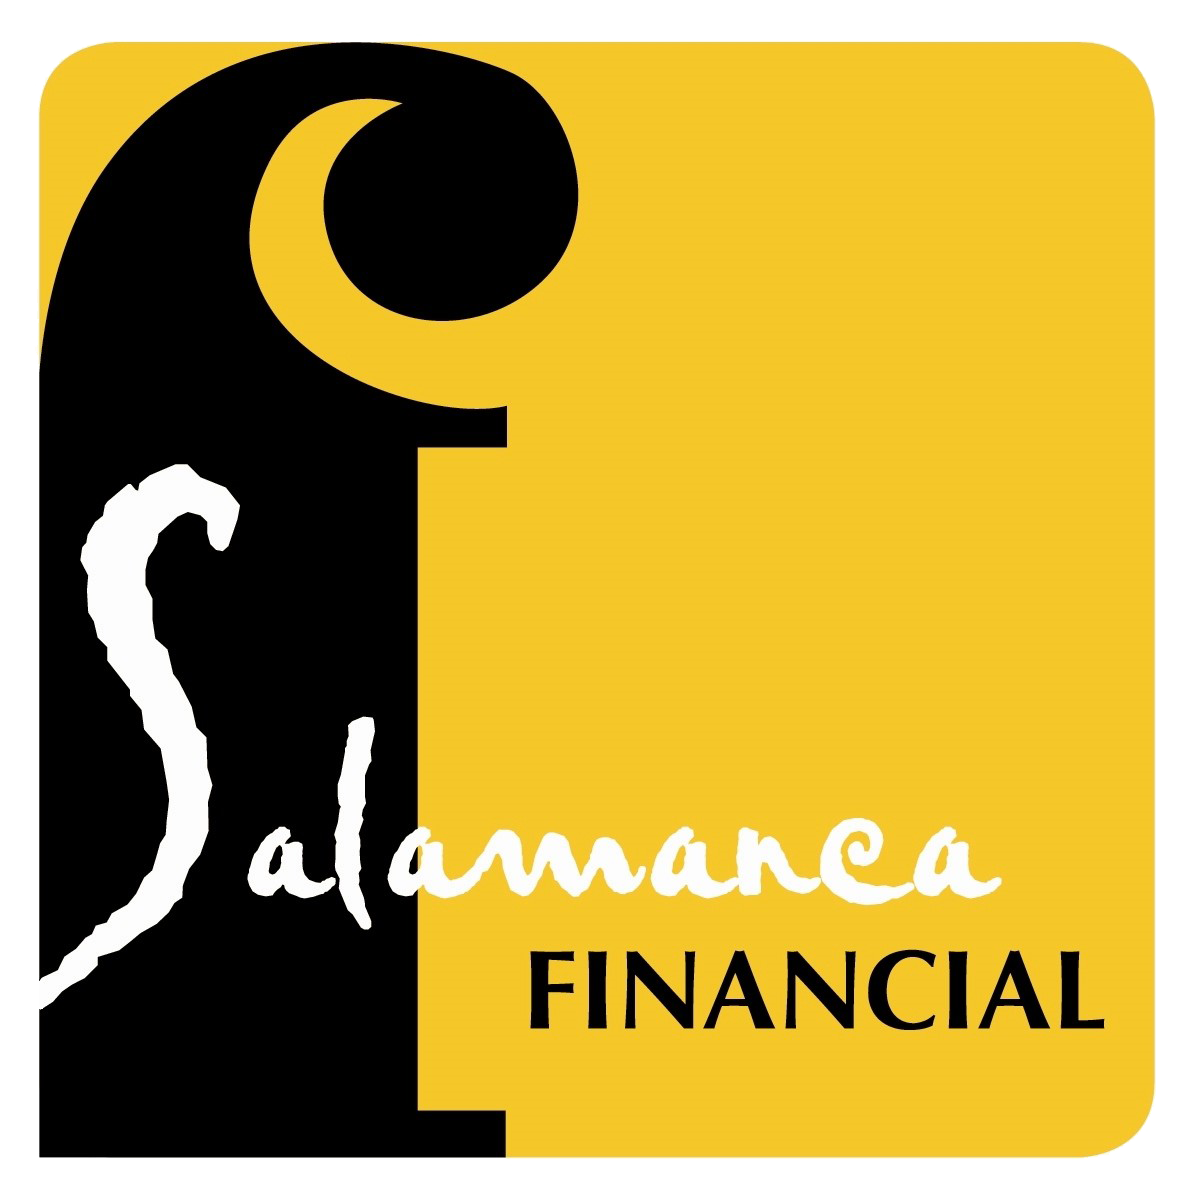 Salamanca Financial